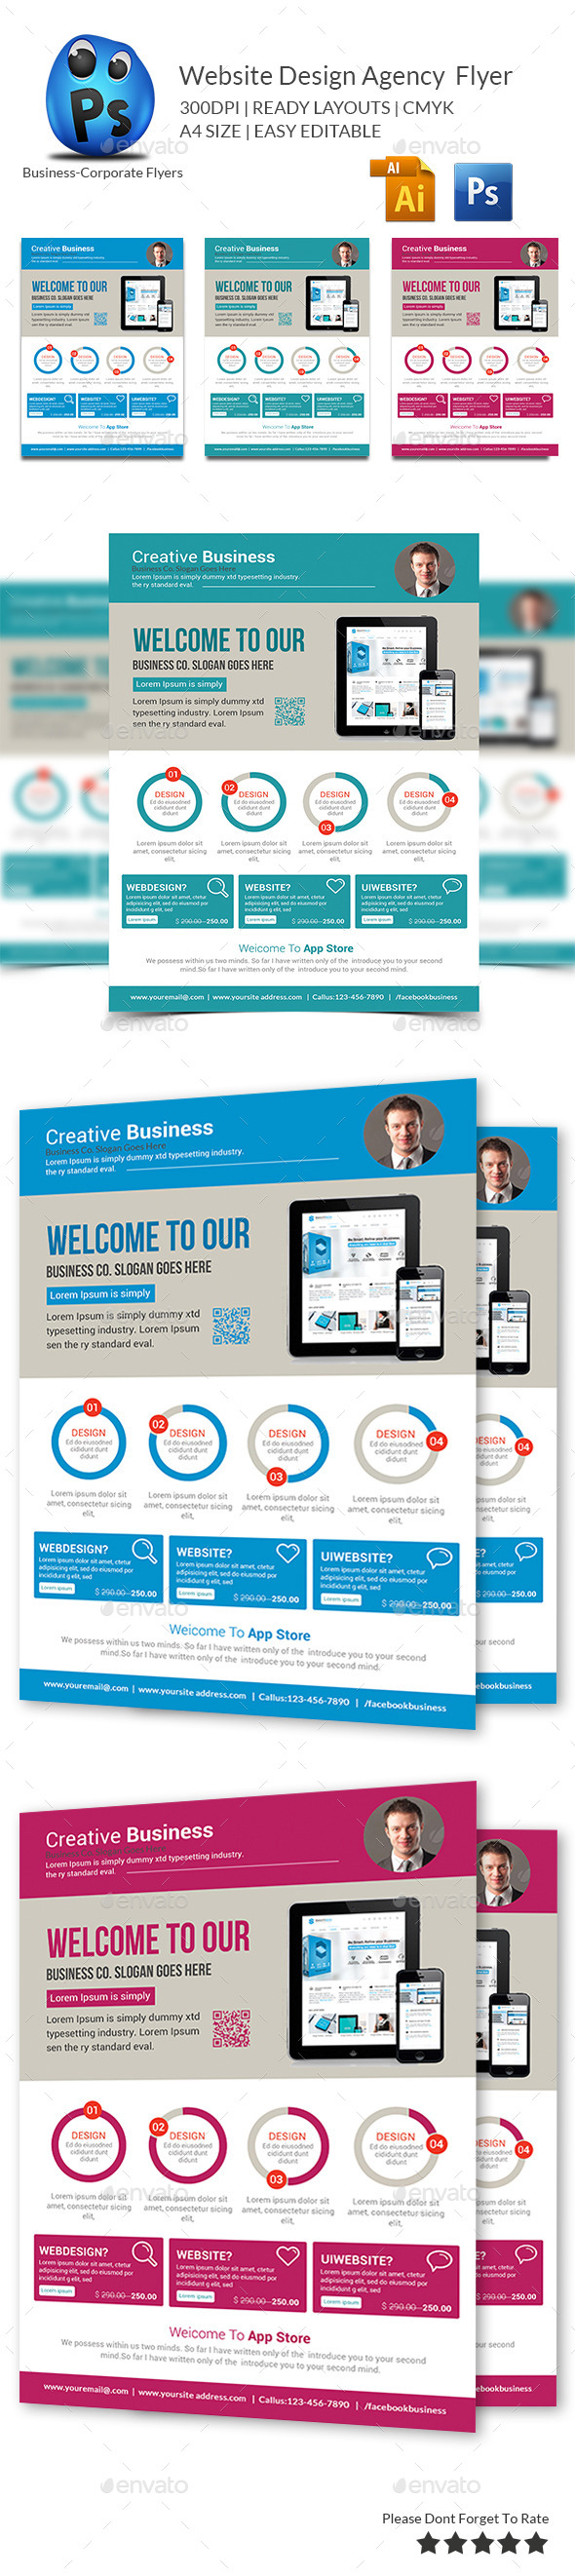 GraphicRiver Website Design Agency Flyer 10010912